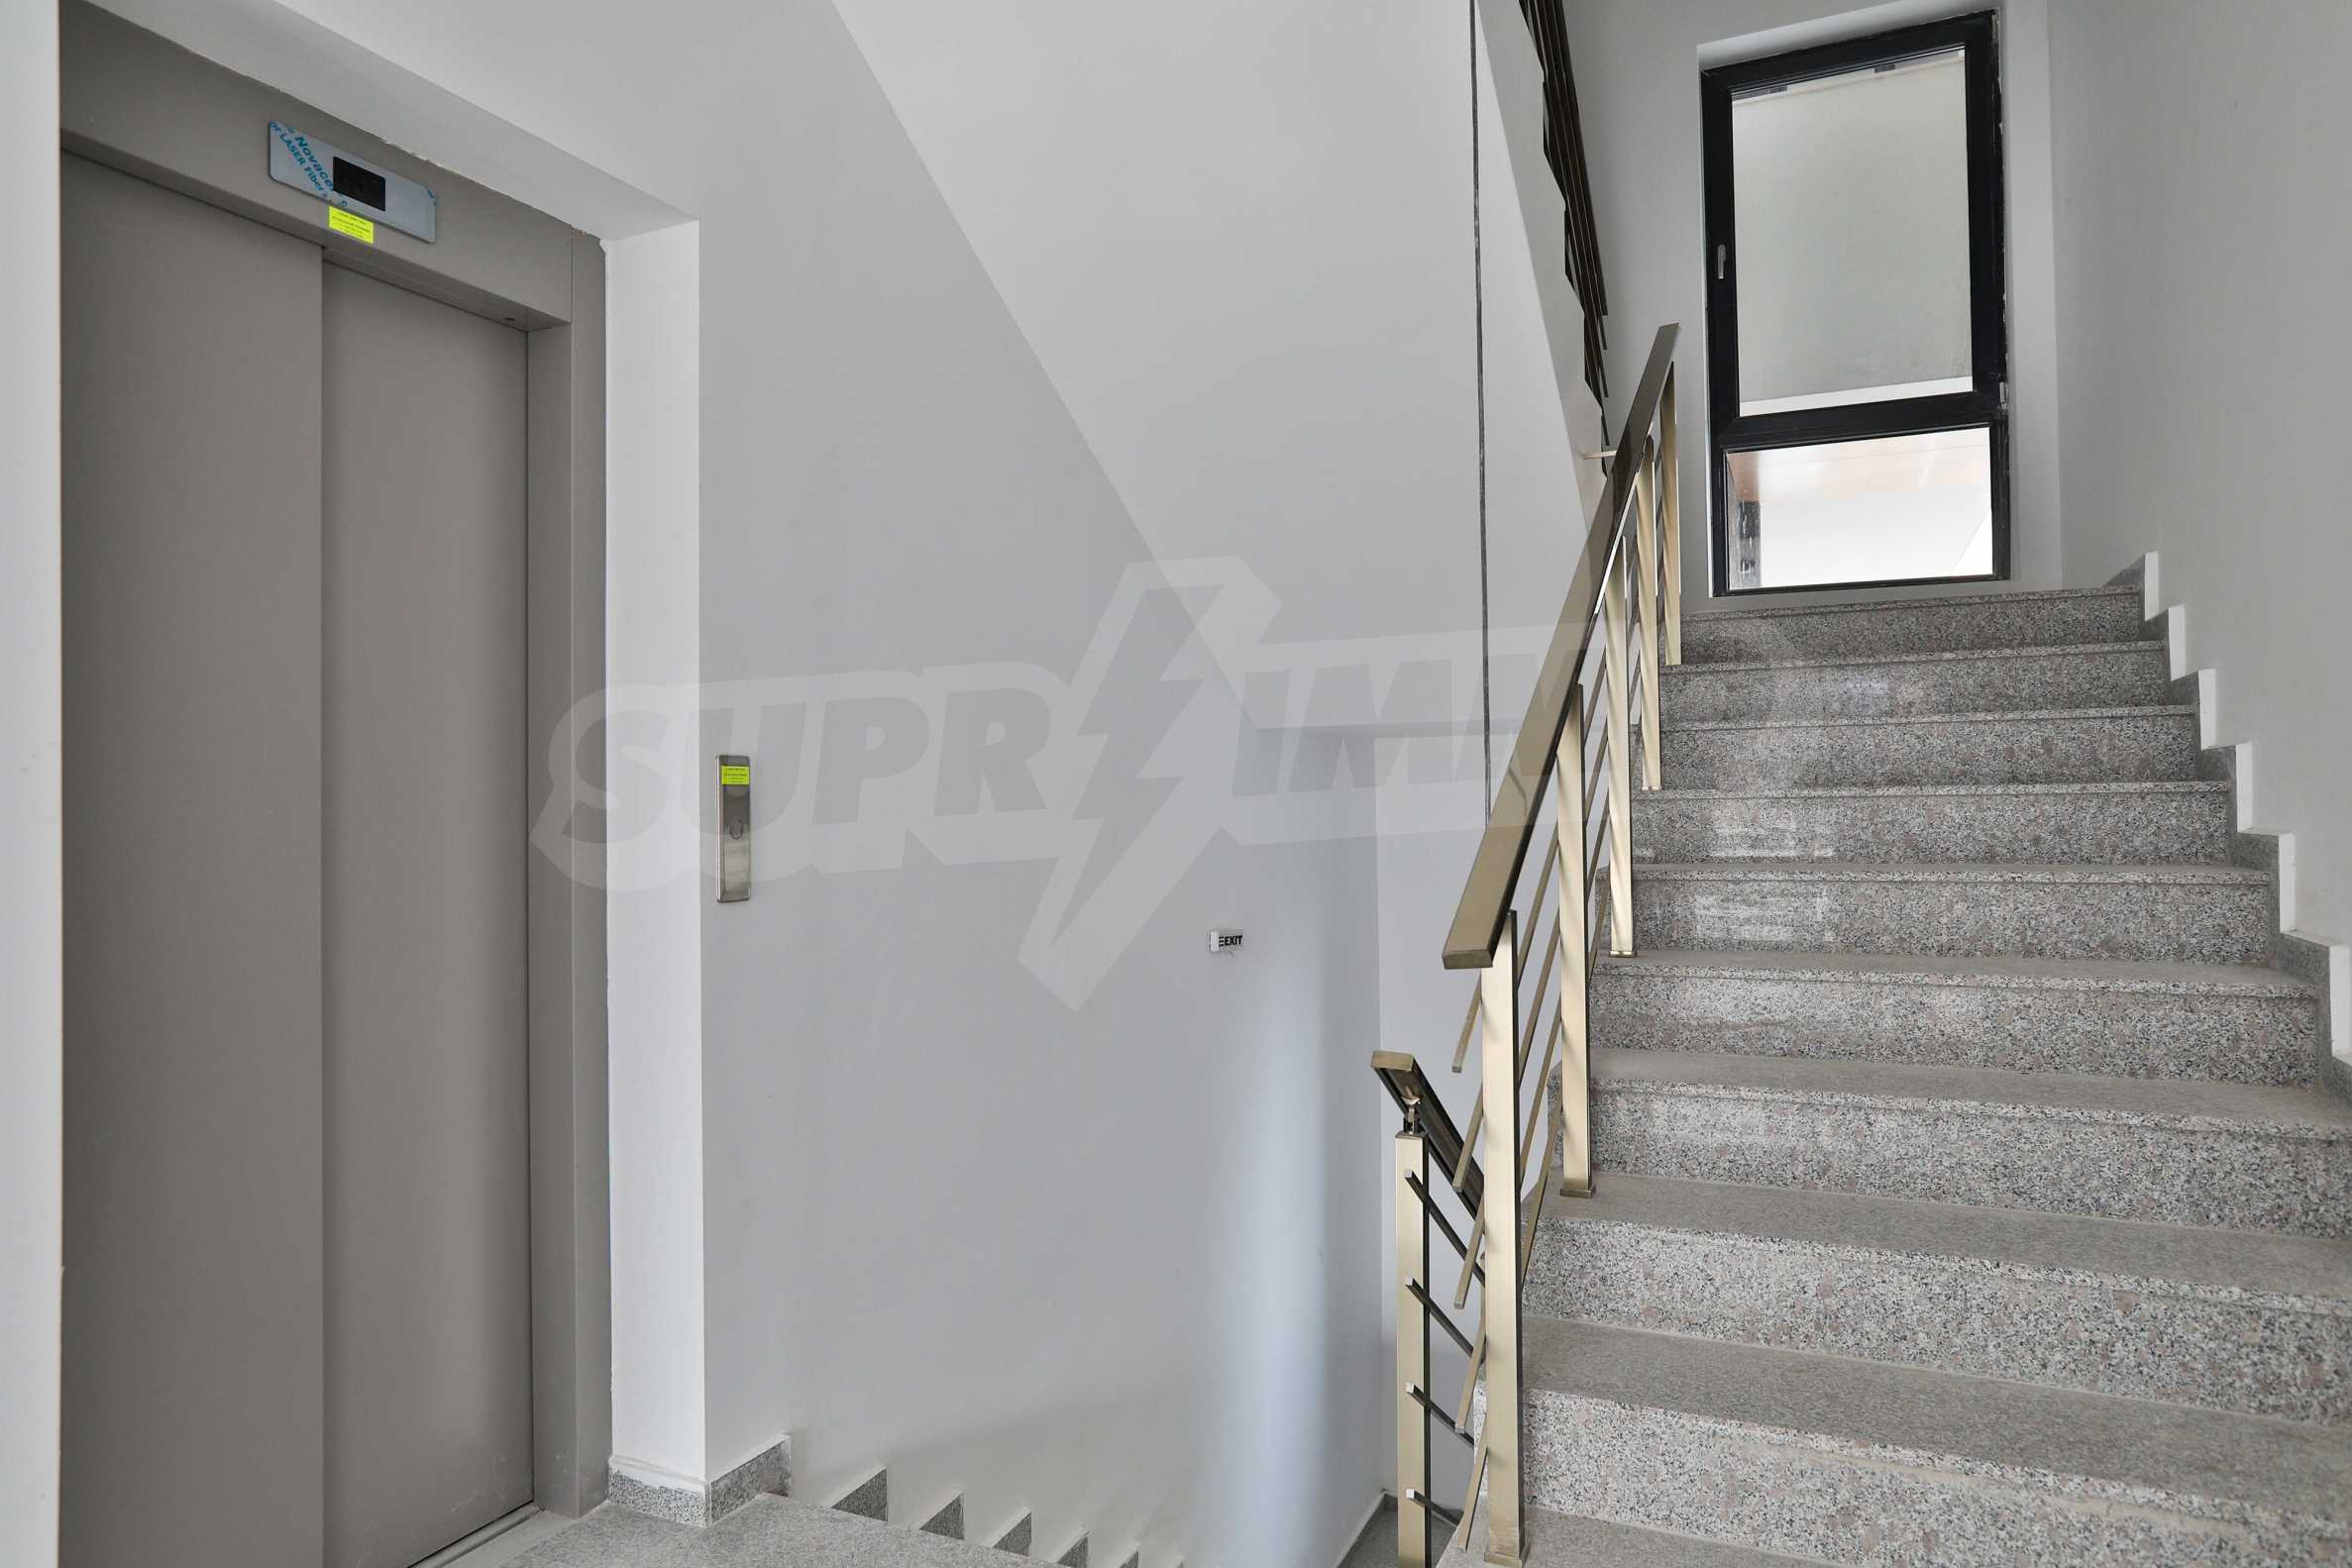 Shops, garages & parking spaces for sale in Comfort - Ovcha Kupel - new building near metro station 13